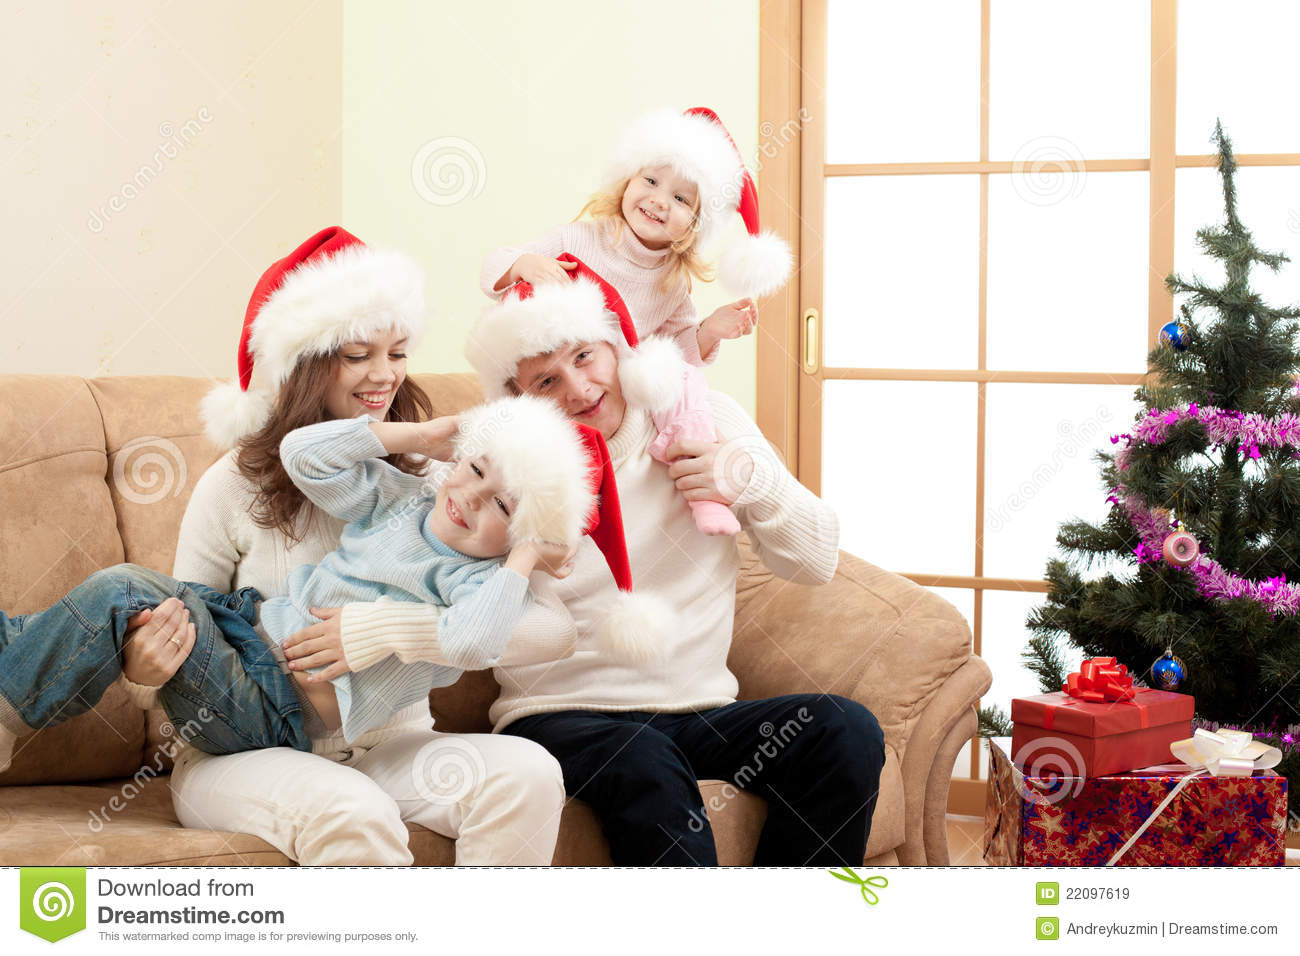 Family Christmas Photo Happy Family On Christmas In Living Room Royalty Free Stock Images